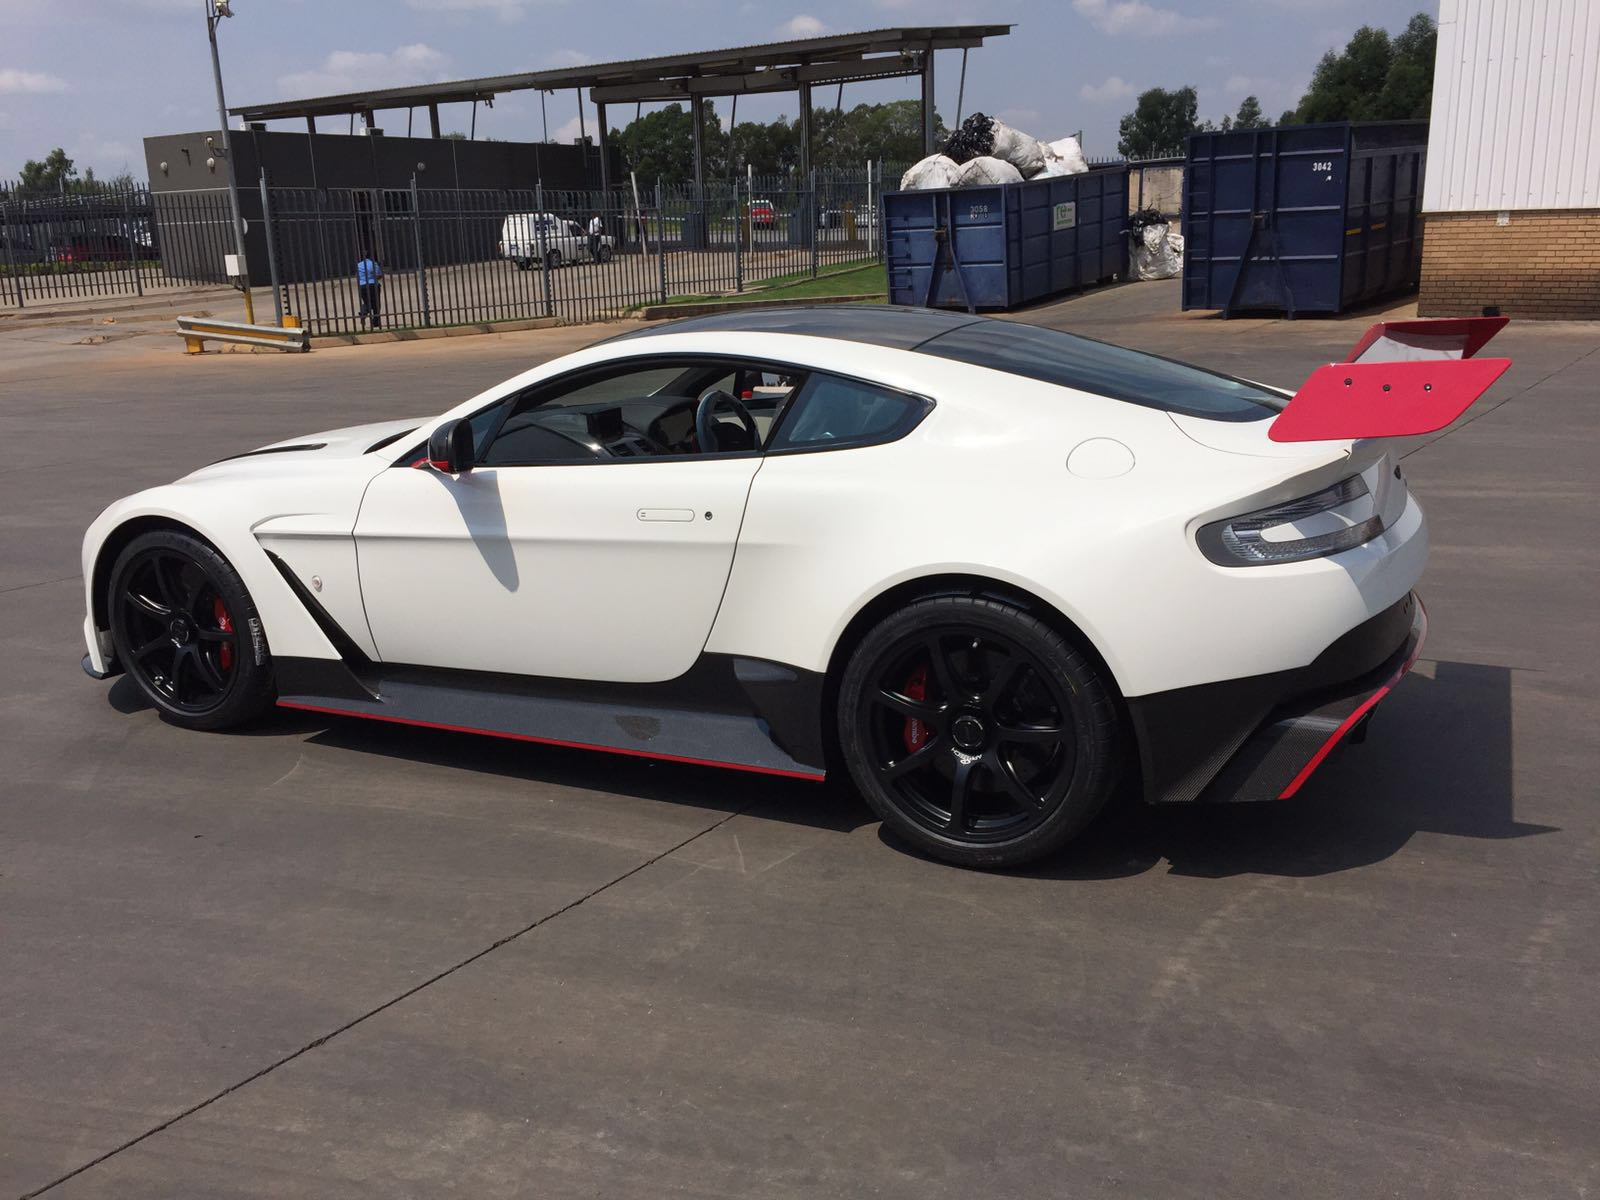 White And Red Aston Martin Vantage Gt12 Arrives In South Africa